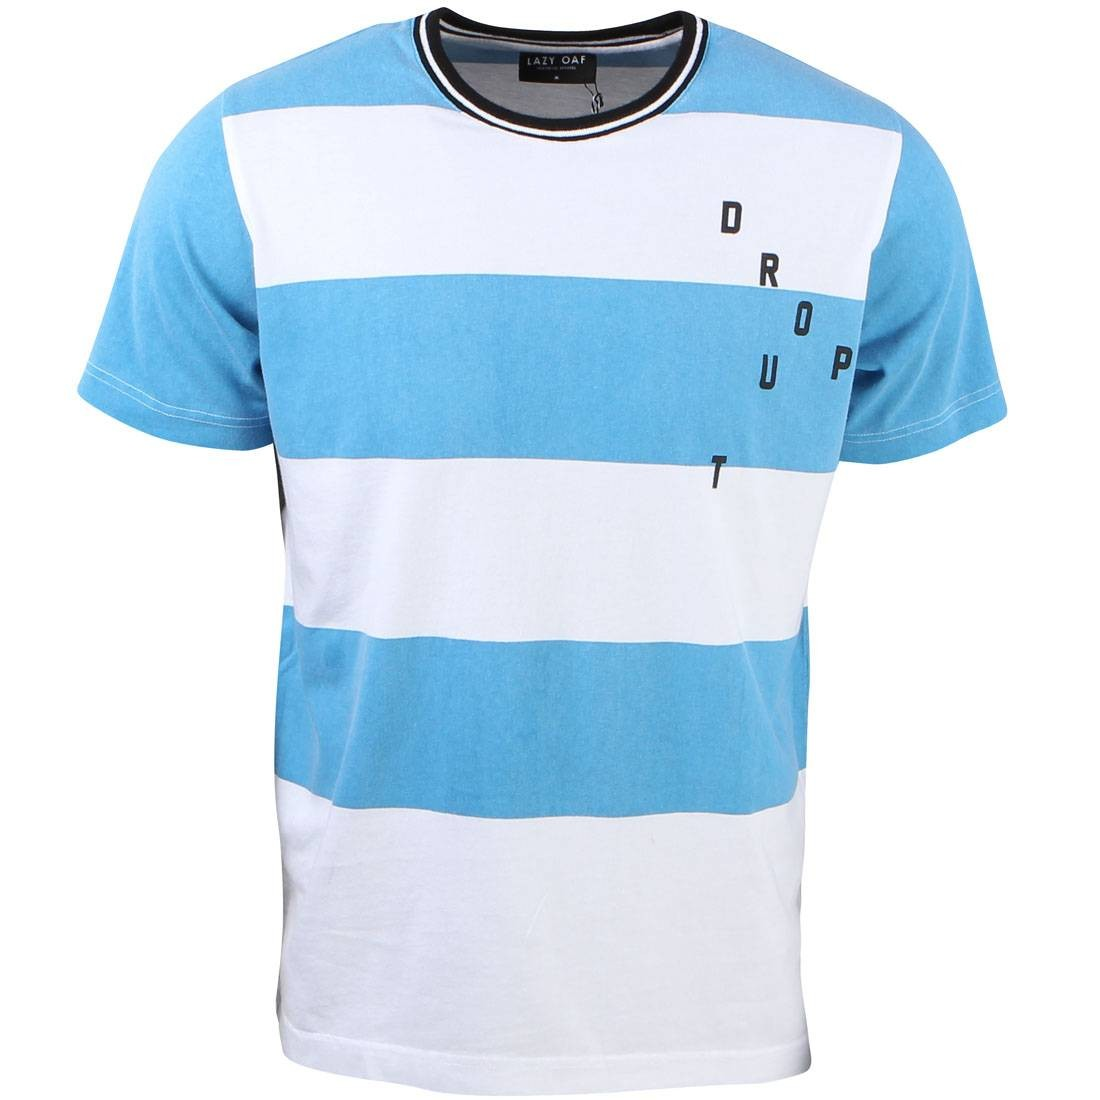 Lazy Oaf Men Dropout Tee (blue)